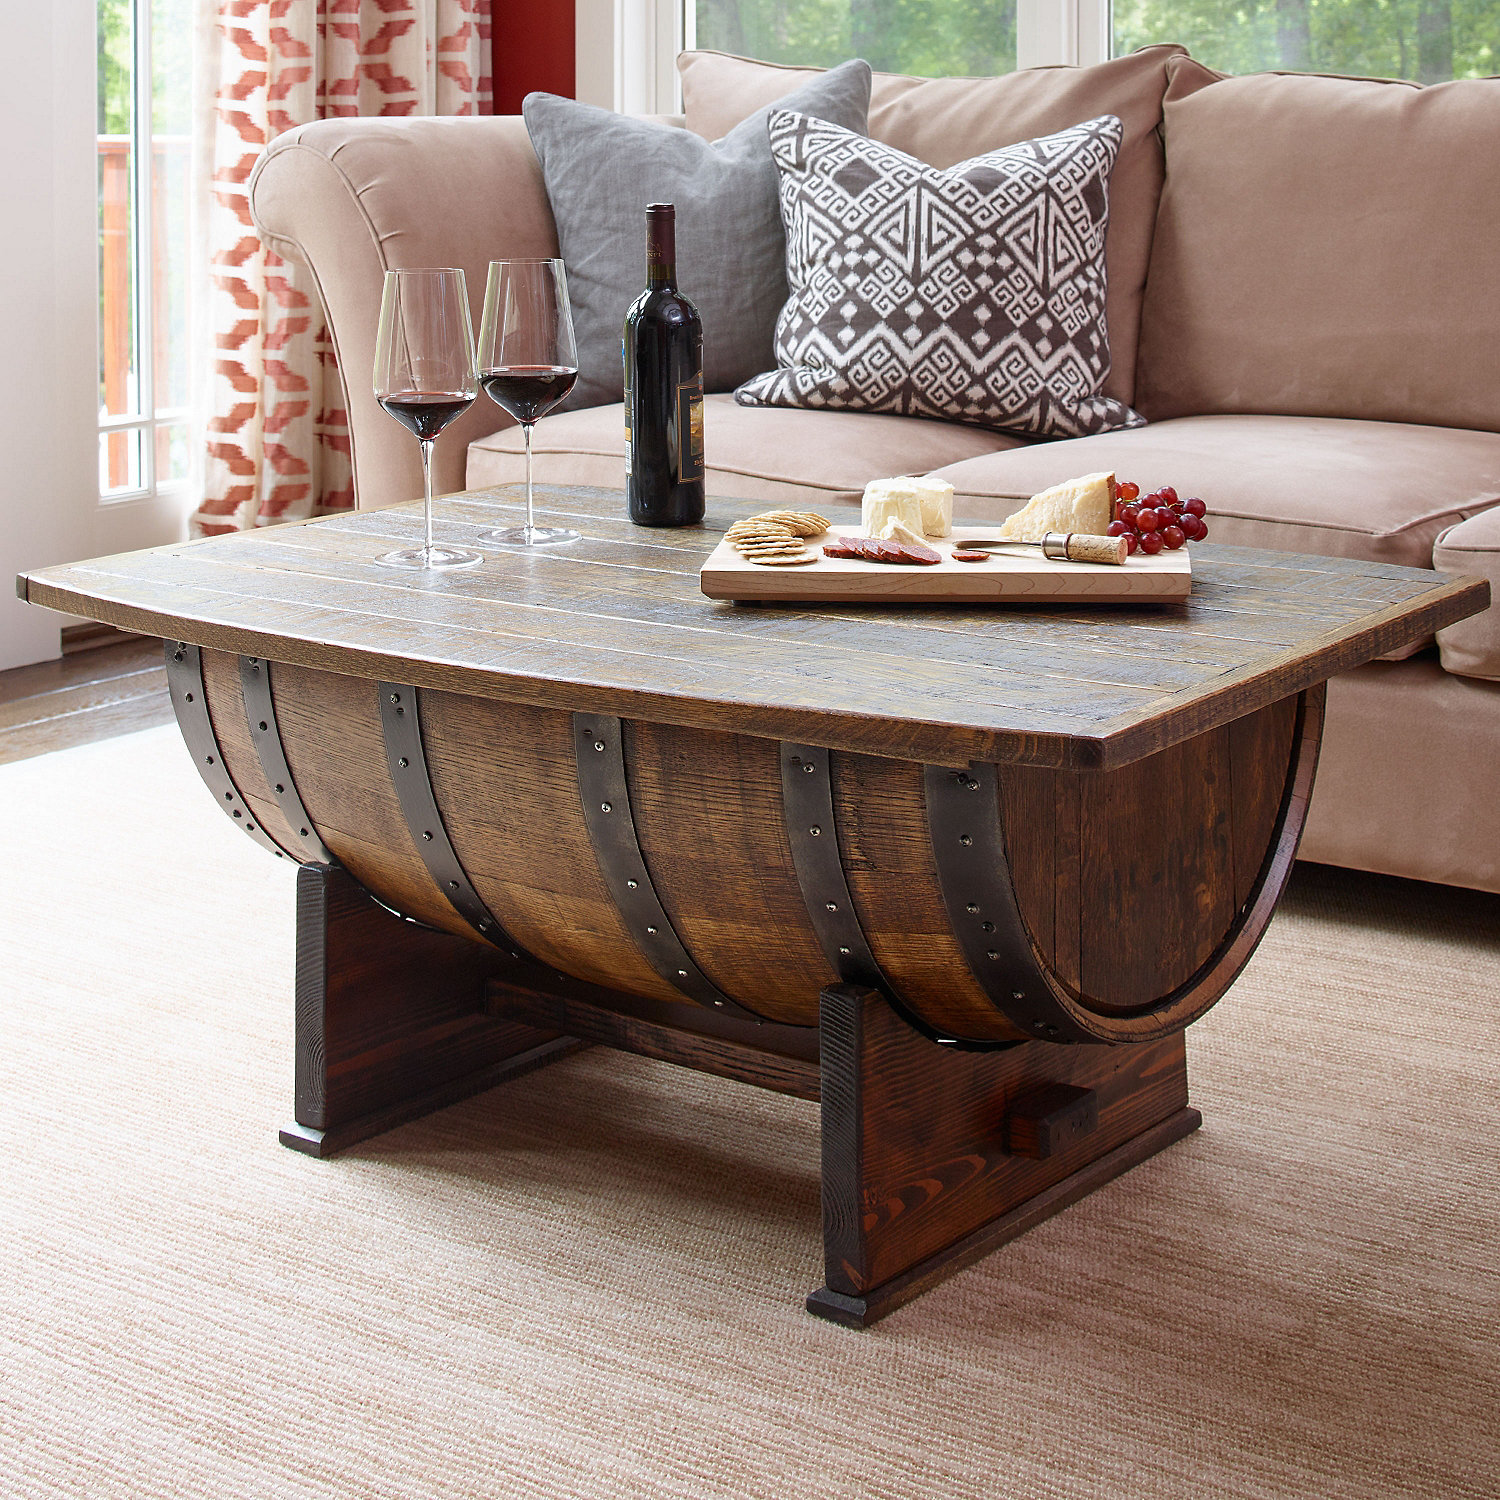 Half Barrel Coffee Table For Your Living Room